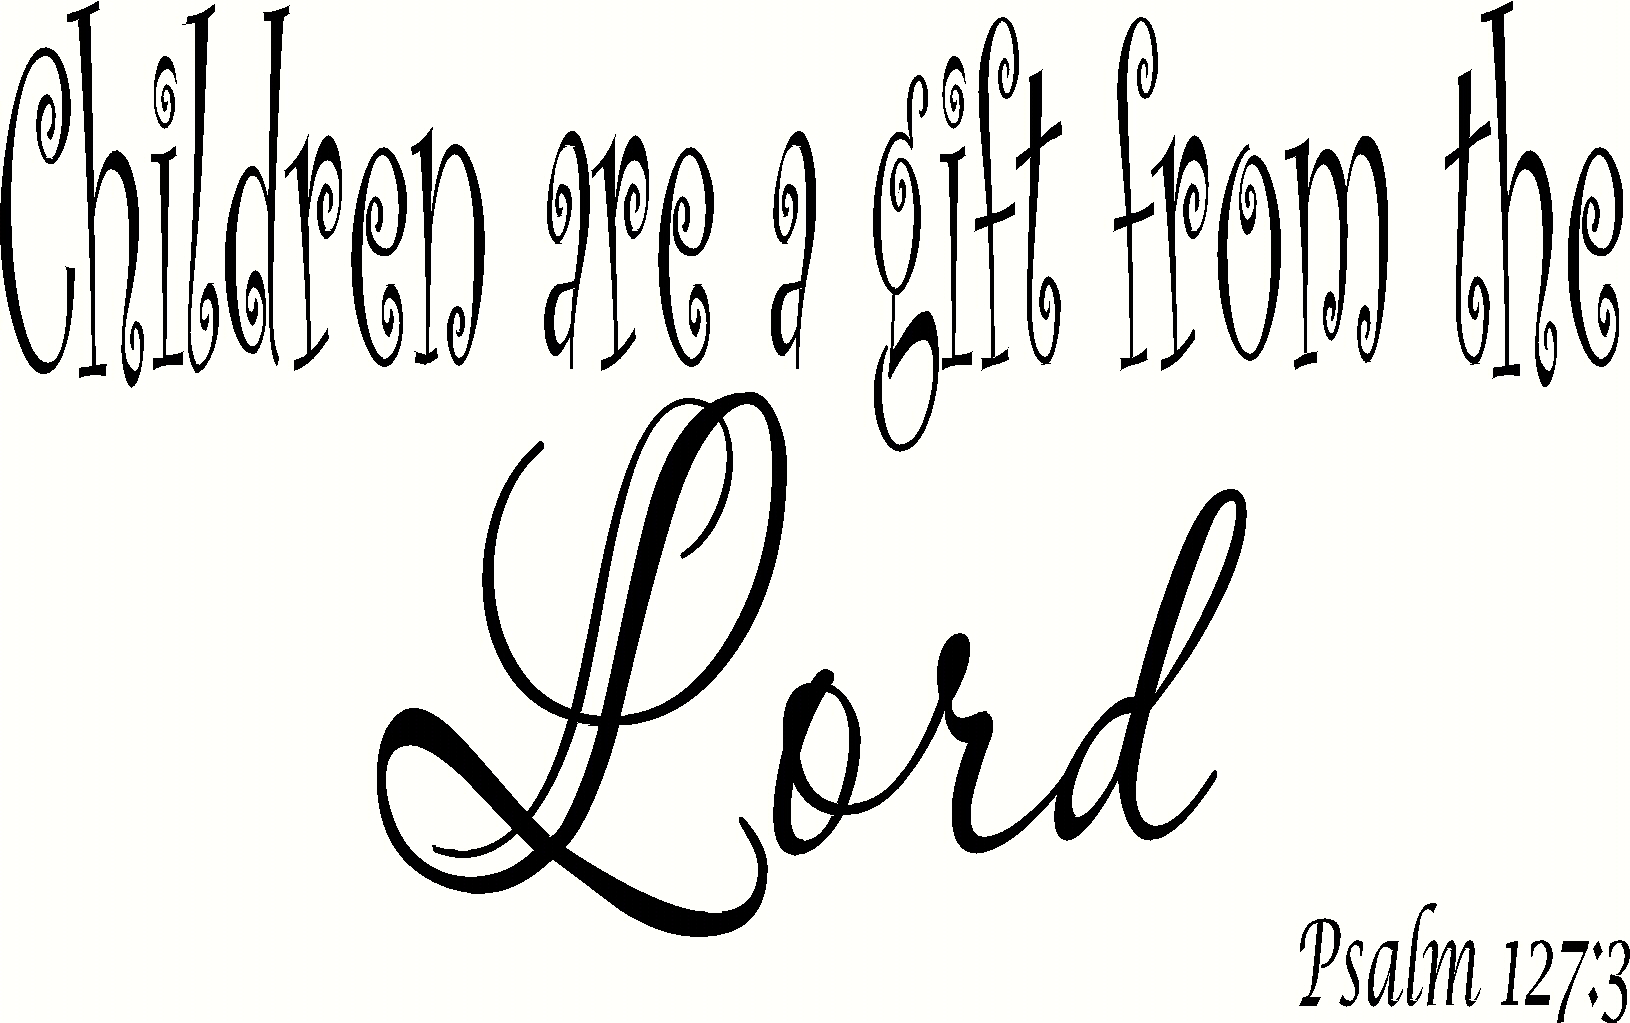 Psalm 127:3 V2 Bible Verse Wall Decal Image